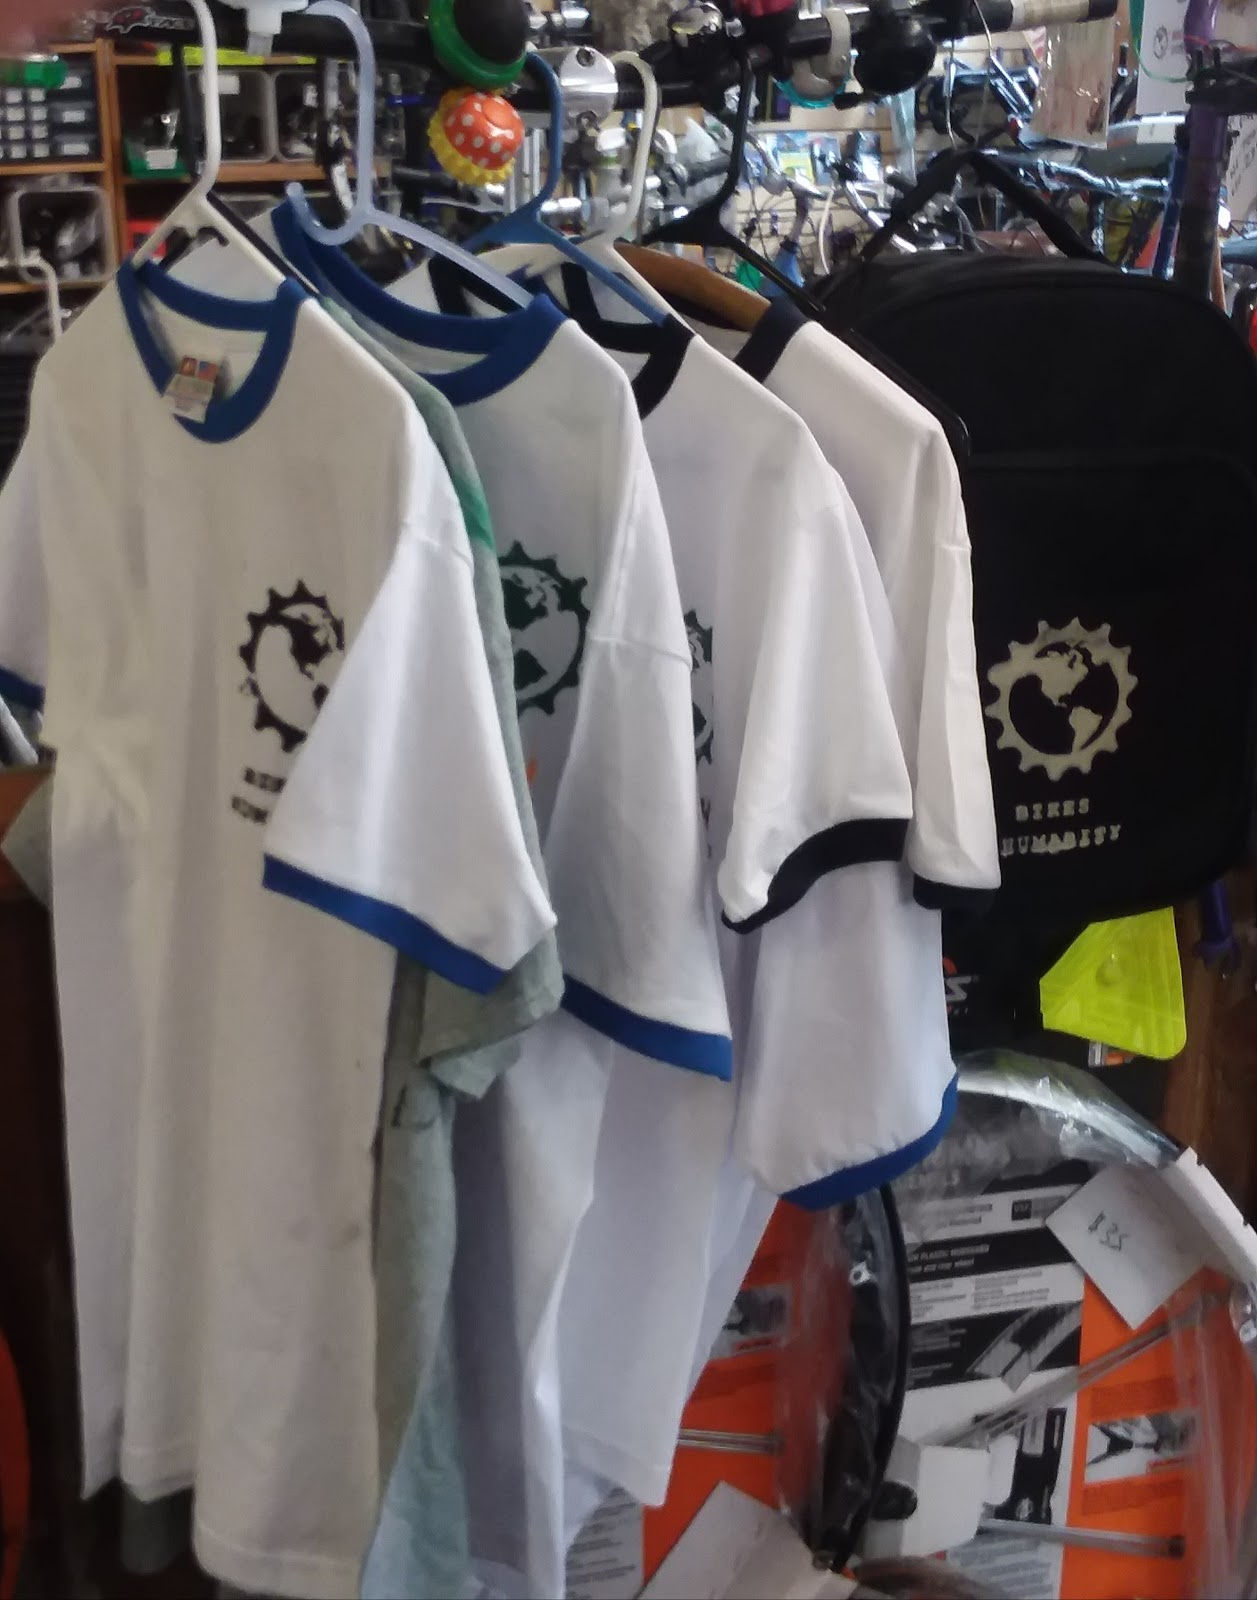 - Image Description: A row of t-shirts with the B4HPDX Earth-inside-gear logo printed on them. The shirts are hanging off of bike handle-bars.